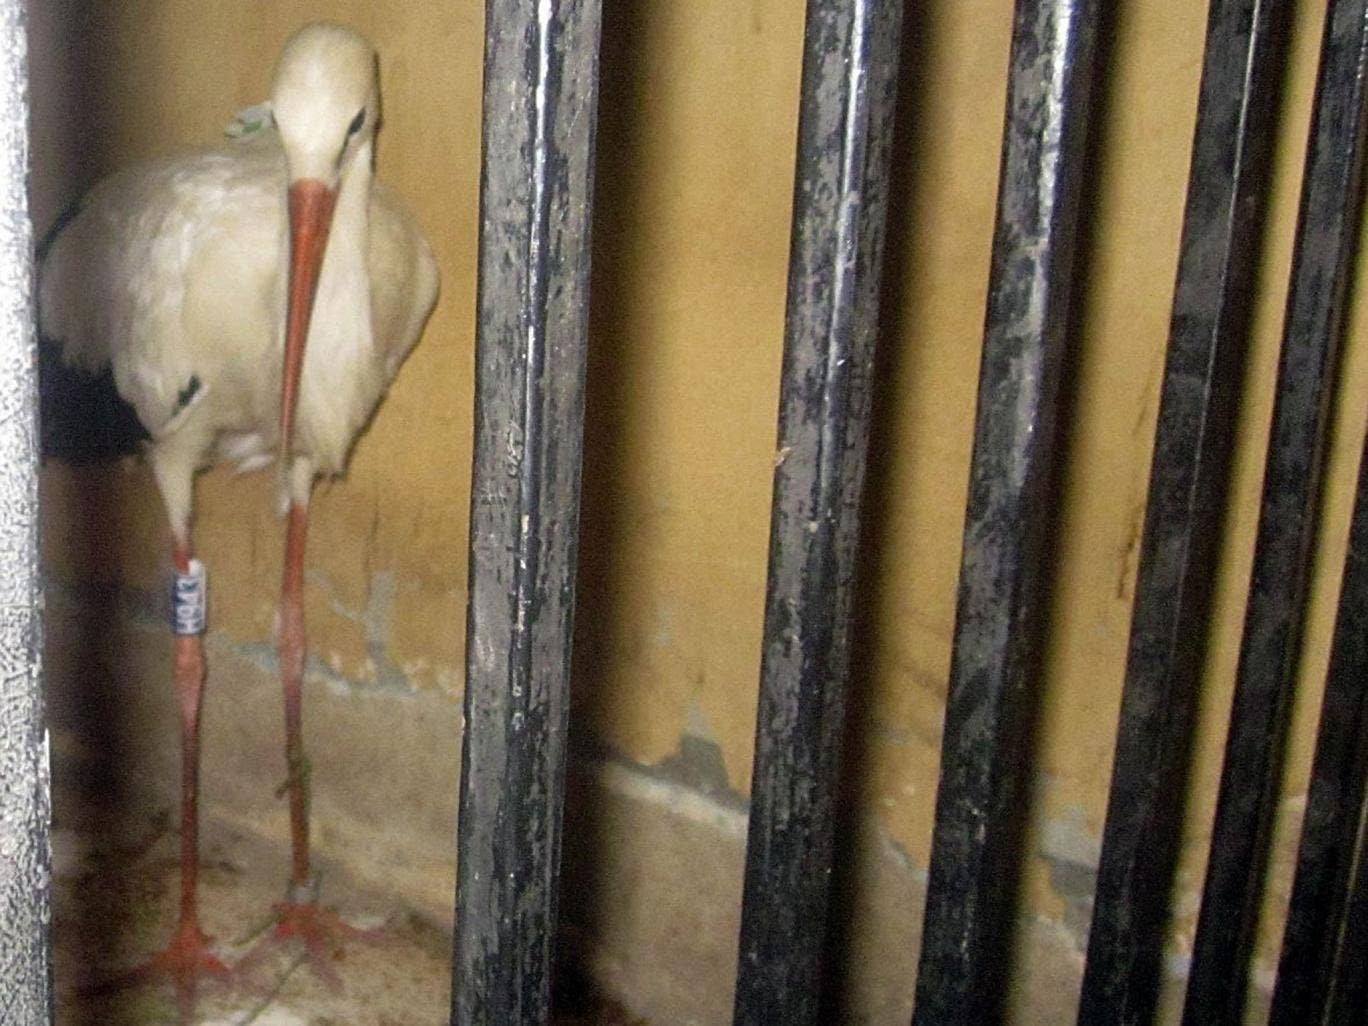 A migrating stork is held in a police station after a citizen suspected it of being a spy and brought it to the authorities in the Qena governorate.